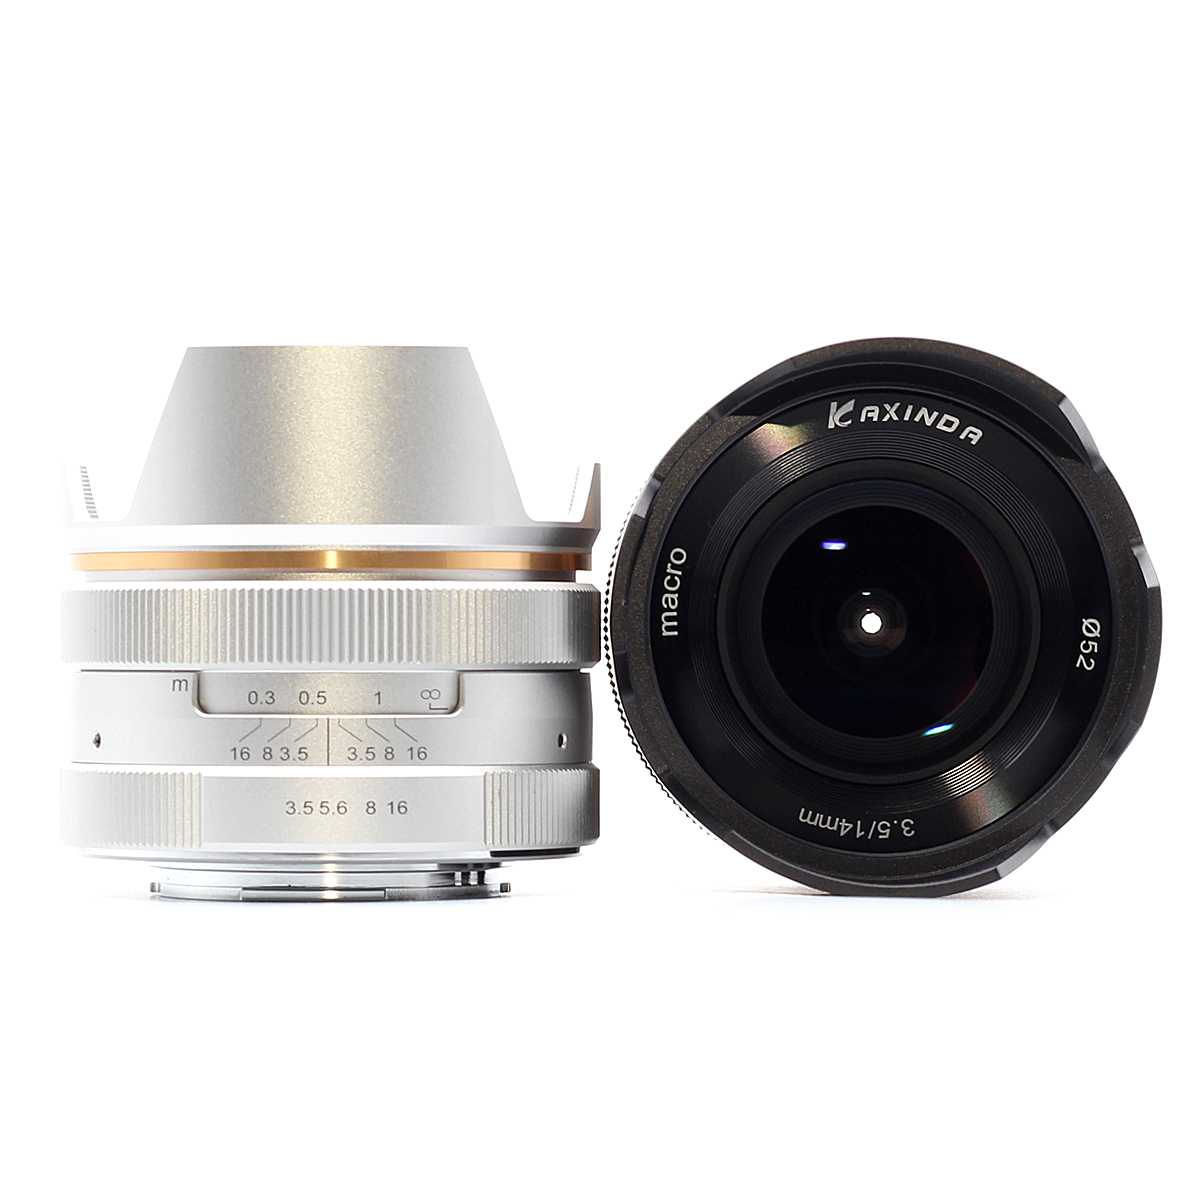 14mm f/3.5 Manual Prime Lens for Sony E Mount NEX Canon EF M EOS M Fujifilm FX X Olympus Pansonic M43 MFT Micro4/3 14 mm F3.5-in Camera Lens from Consumer Electronics    1